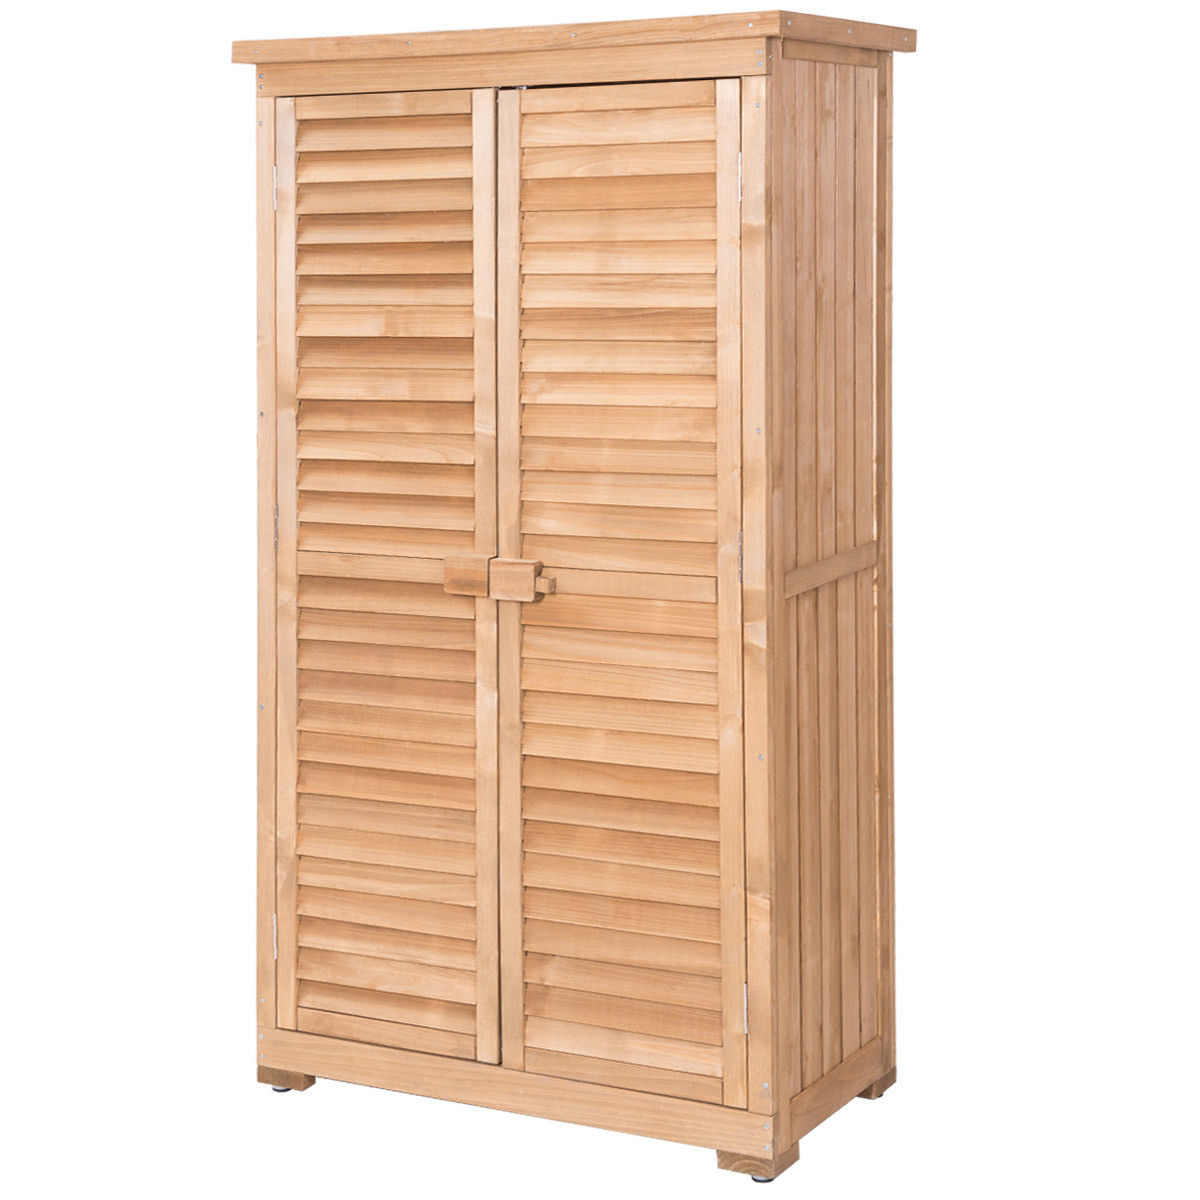 Gymax Outdoor 63'' Tall Wooden Garden Storage Shed Fir Wood Shutter Design Lockers